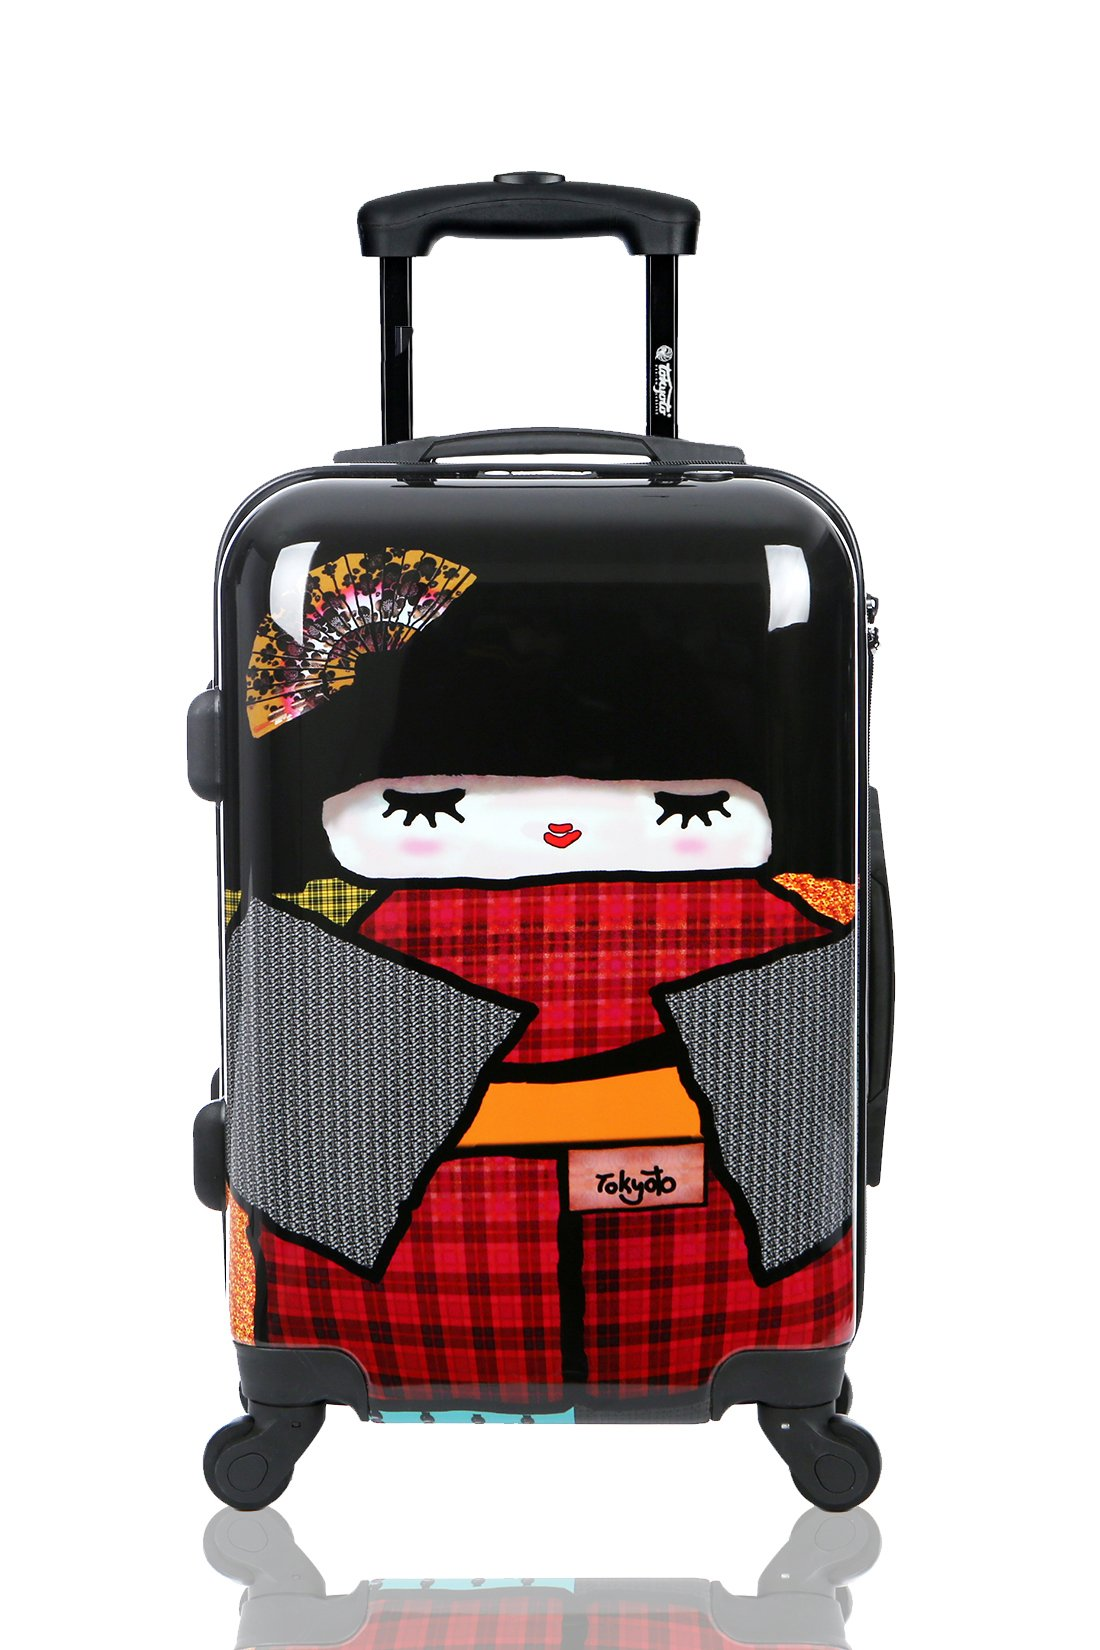 Carry-on Cabin Luggage 55x35x20 Suitcase 20 inch Approved Lightweight 4 Wheel Hard Case Kids Small Size Children Powerbank Charger Prepared JAPAN DOLL TOKYOTO LUGGAGE (TROLLEY + CHARGER)